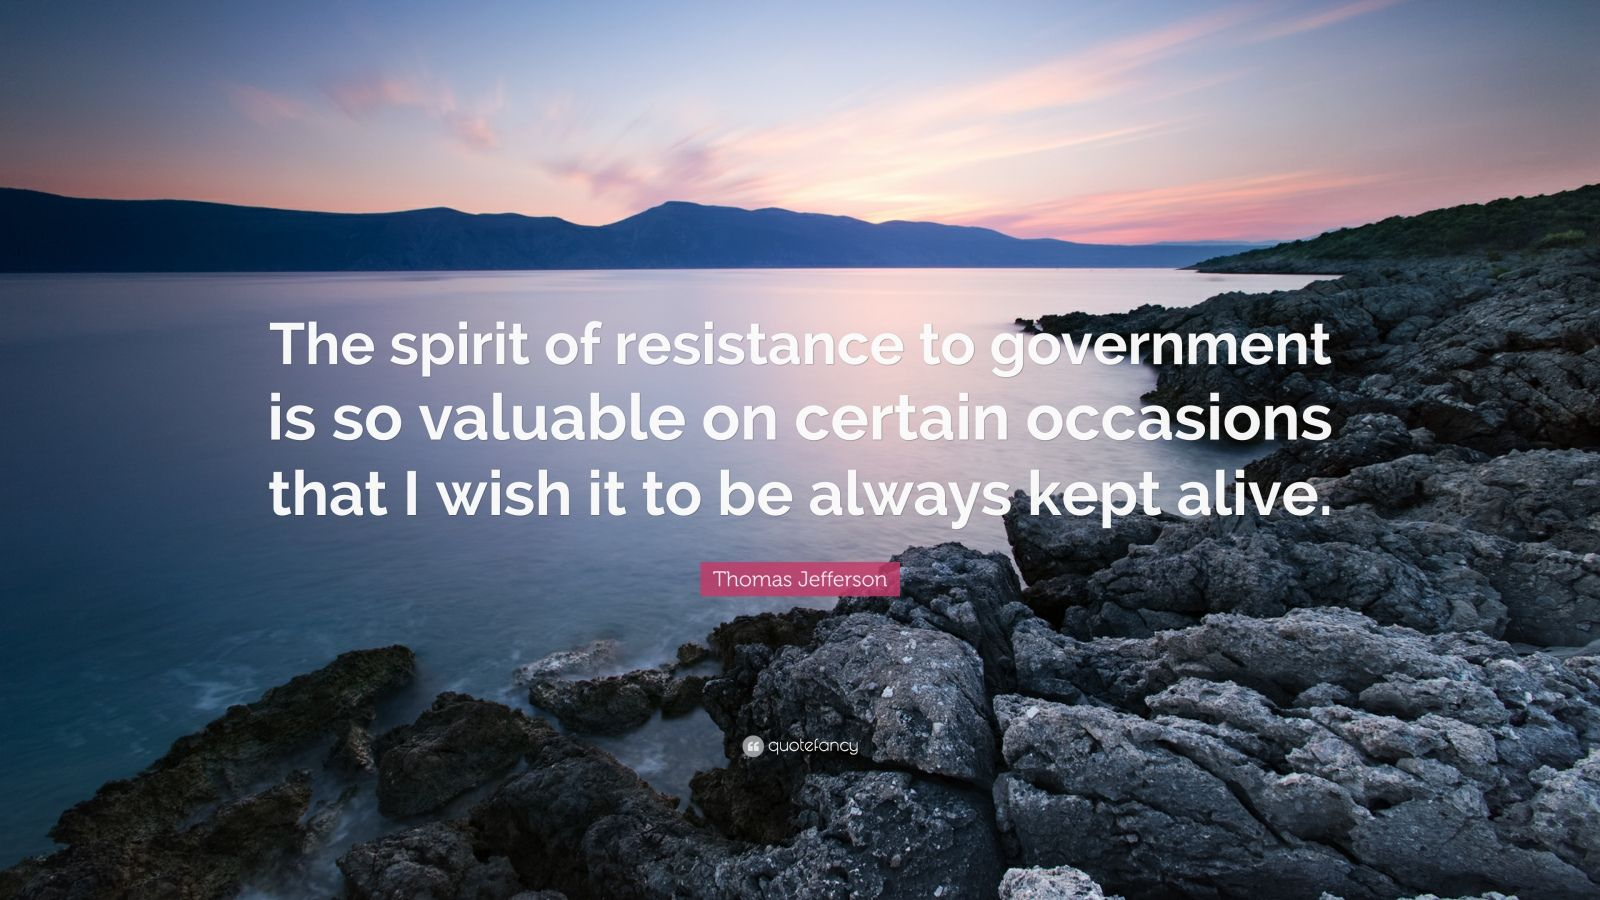 """Thomas Jefferson Quote: """"The spirit of resistance to government is so valuable on certain occasions that I wish it to be always kept alive."""""""